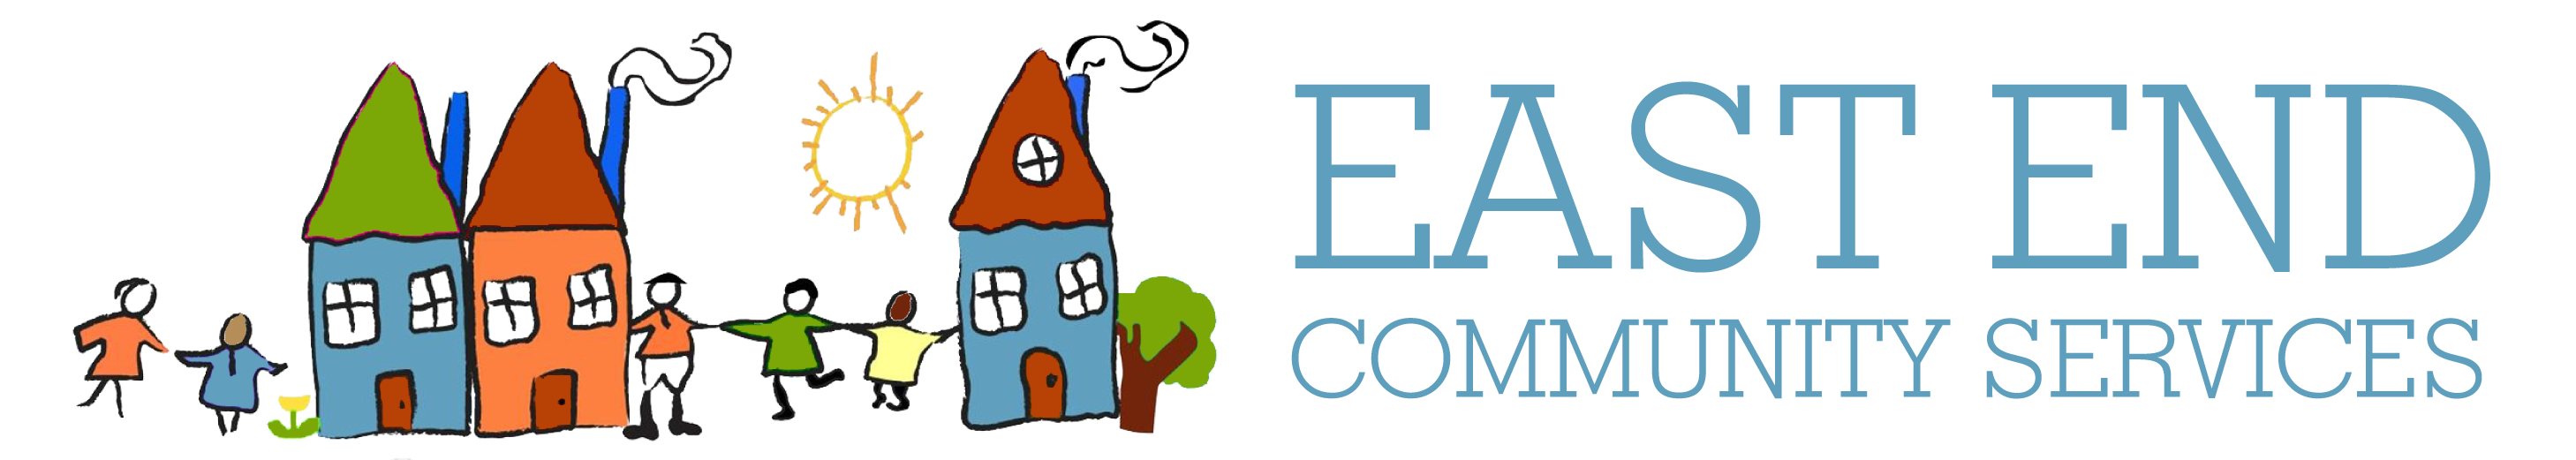 East end community services. Volunteering clipart outreach program